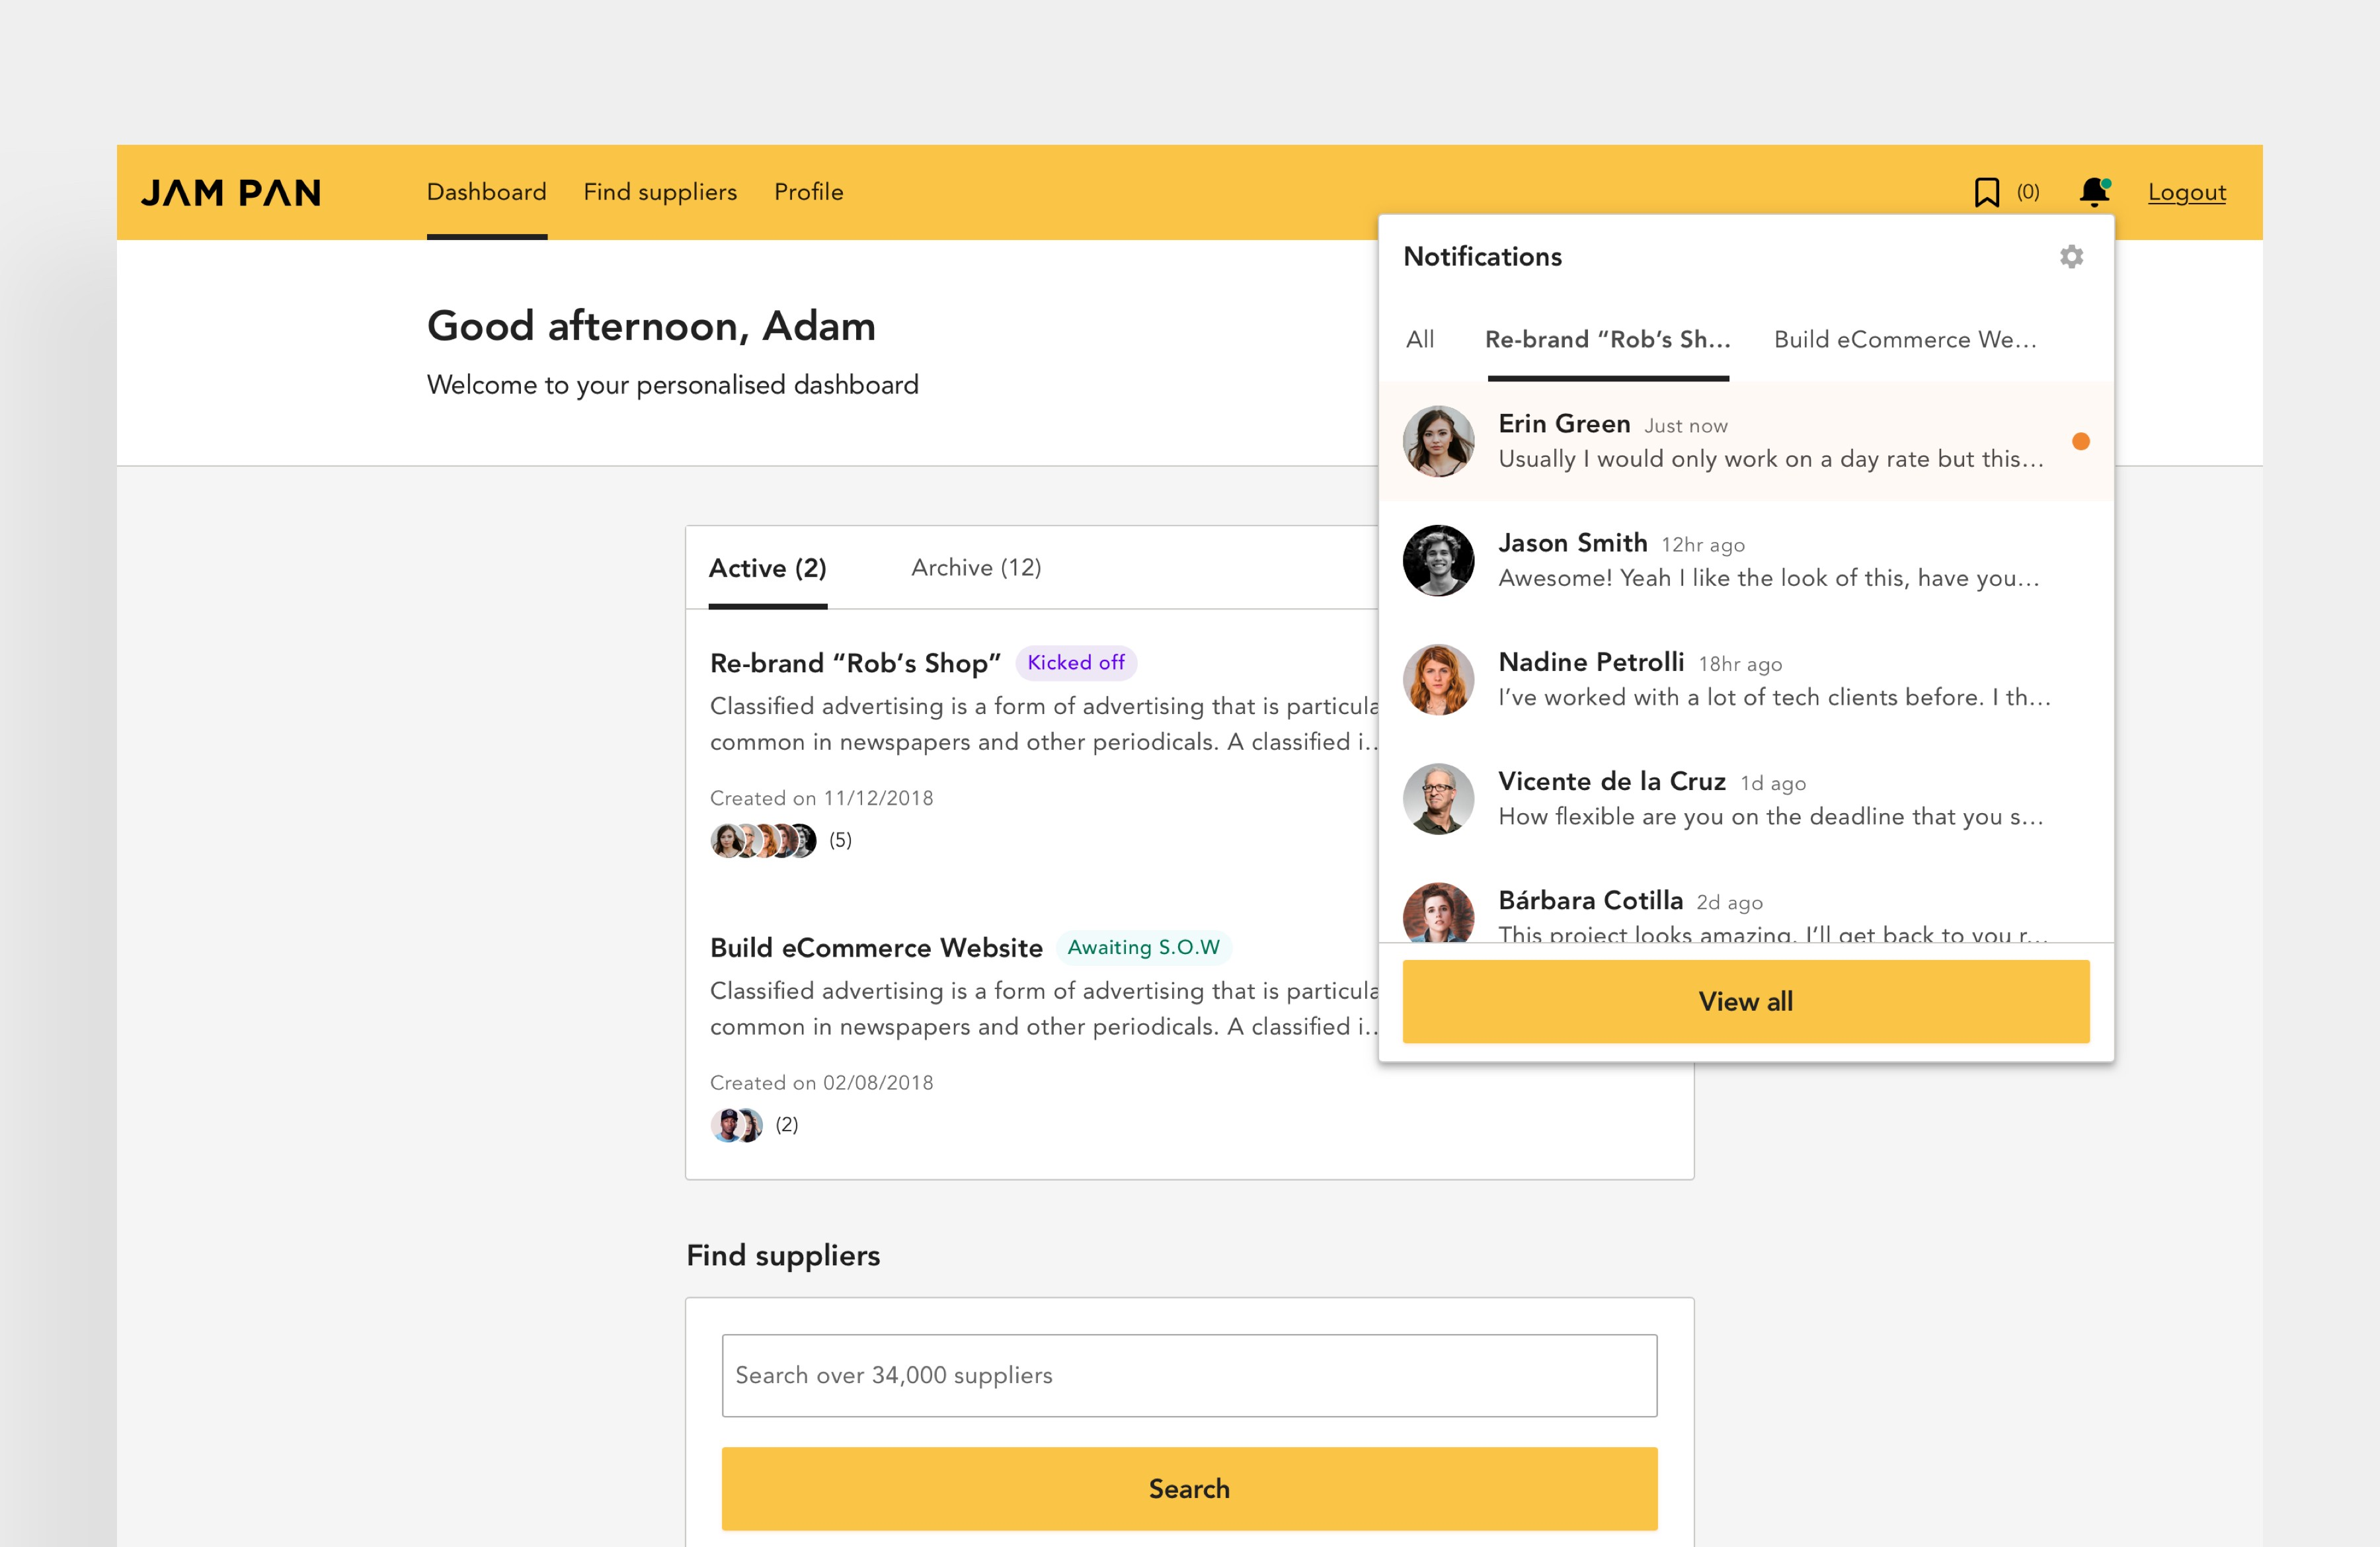 Client's dashboard with Notifications